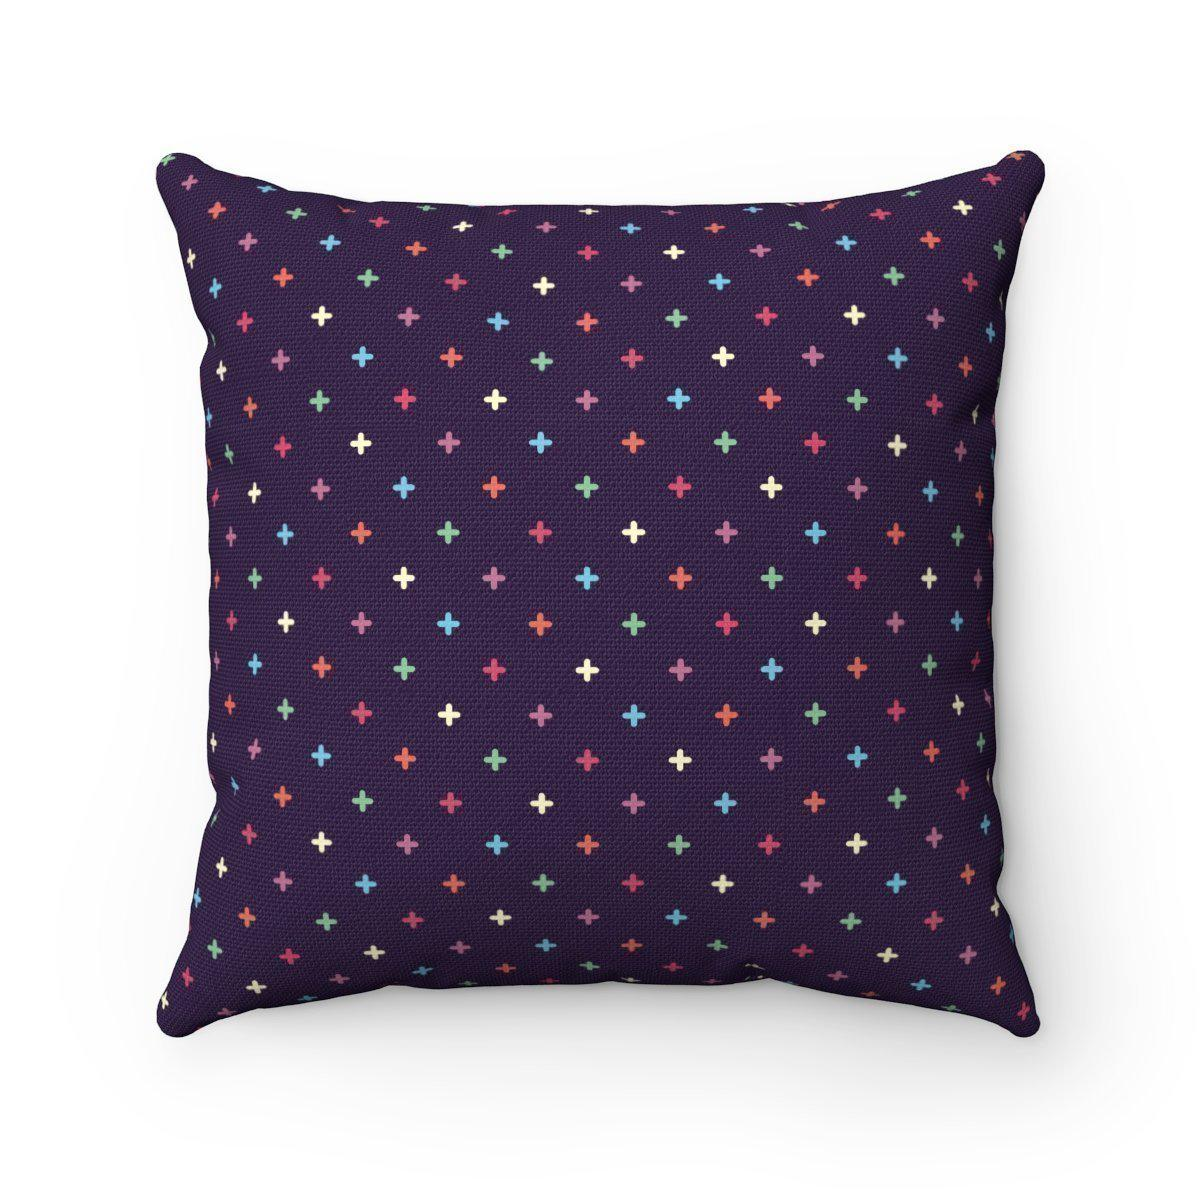 Double sided modern decorative cushion cover-Home Decor - Decorative Accents - Pillows & Throws - Decorative Pillows-Maison d'Elite-14x14-Très Elite